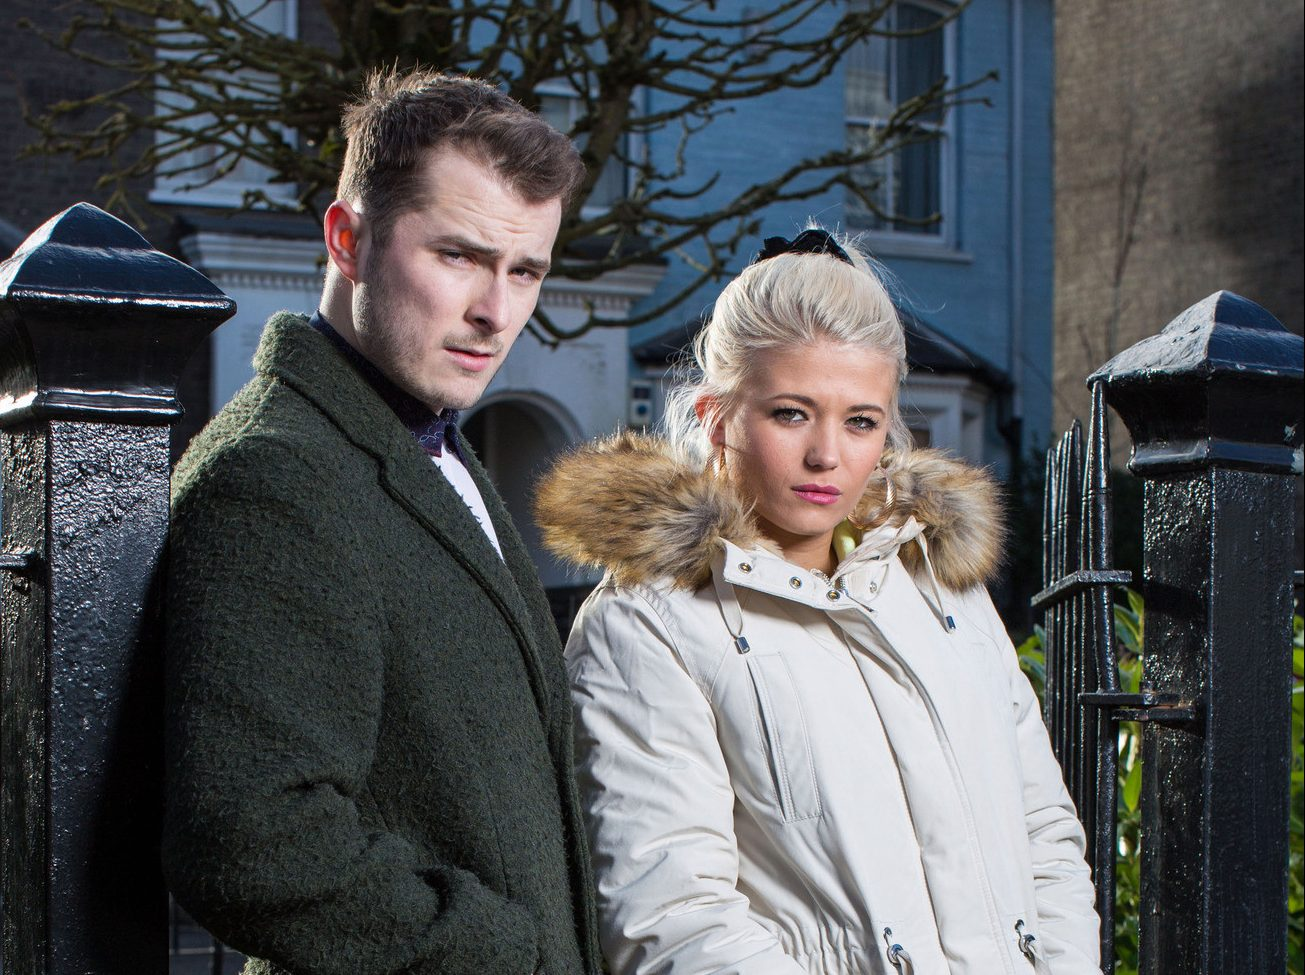 What is Ben up to in EastEnders? 7 theories on what his secret with Lola is all about